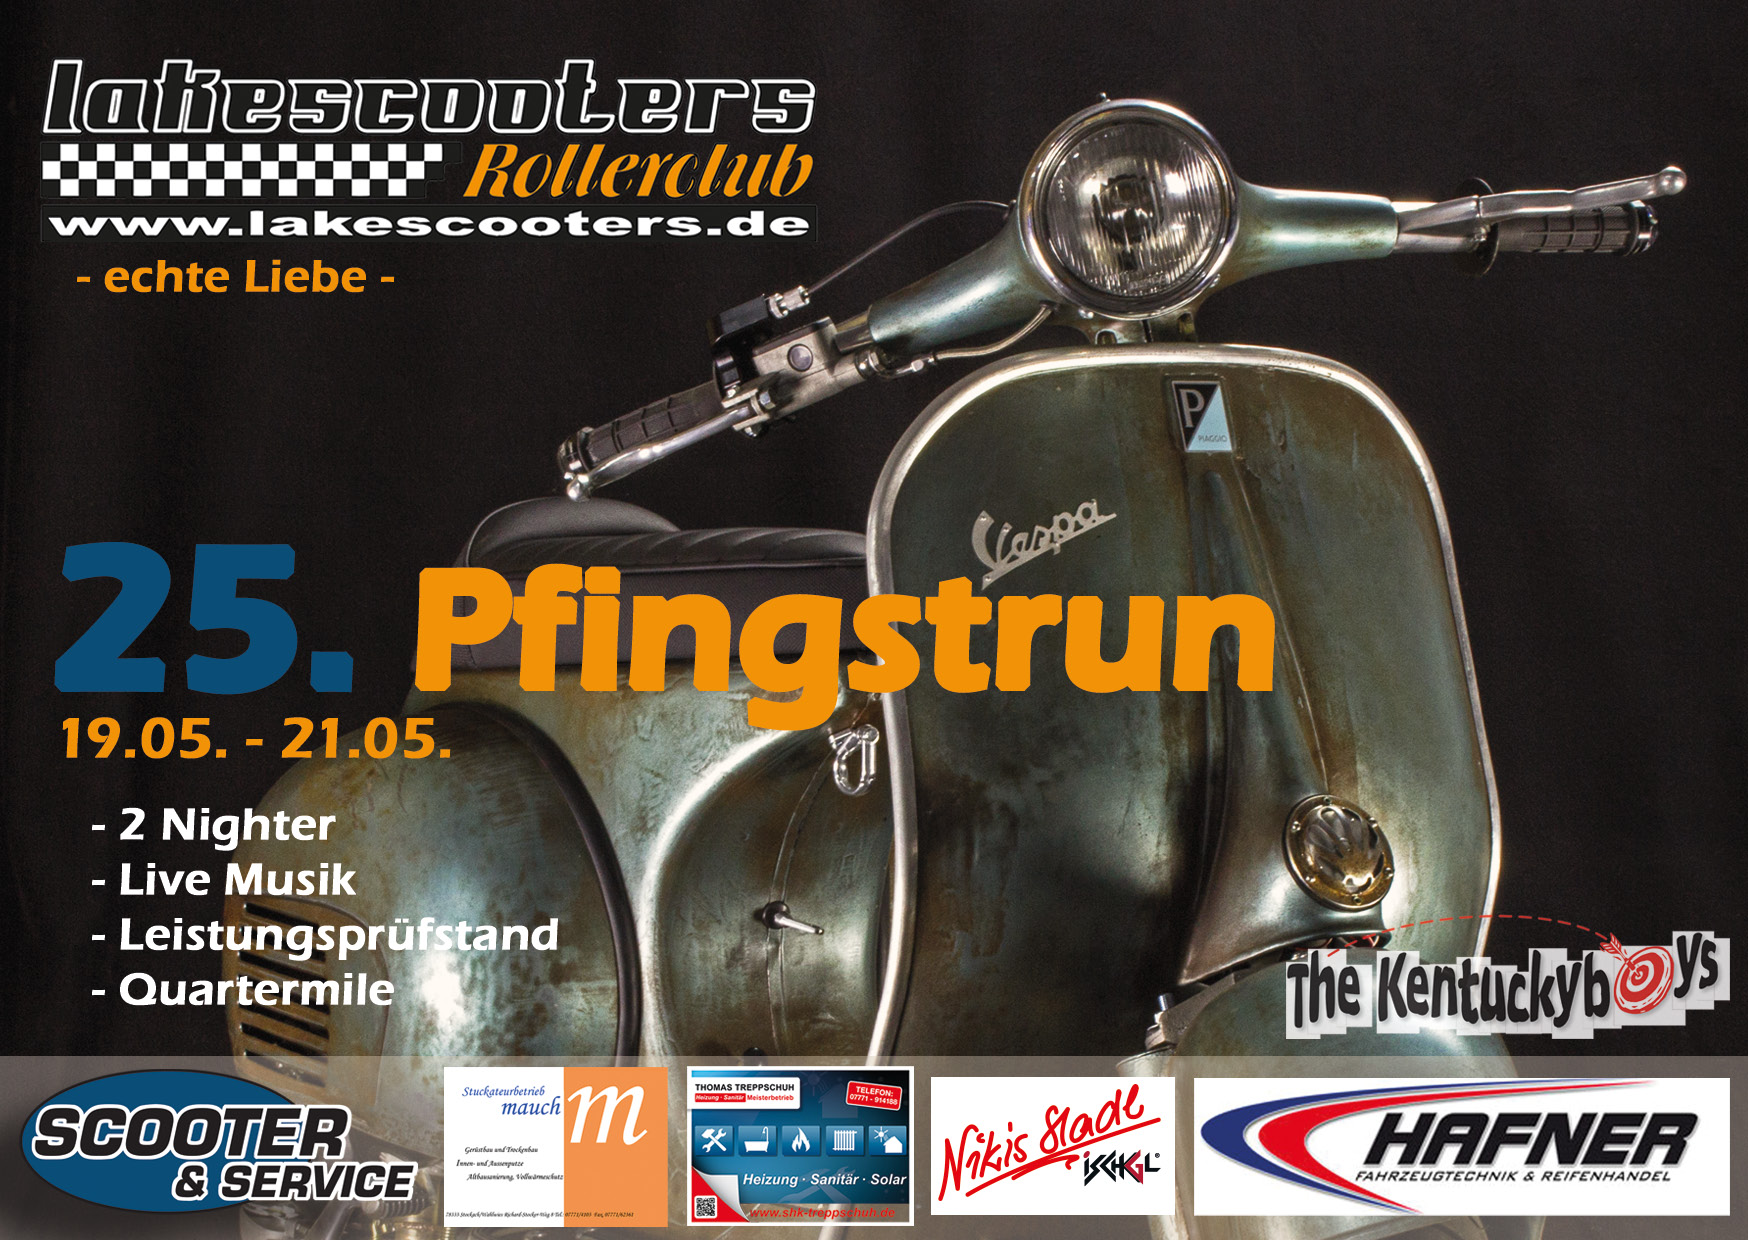 Flyer_Pfingstrun_25th_2018